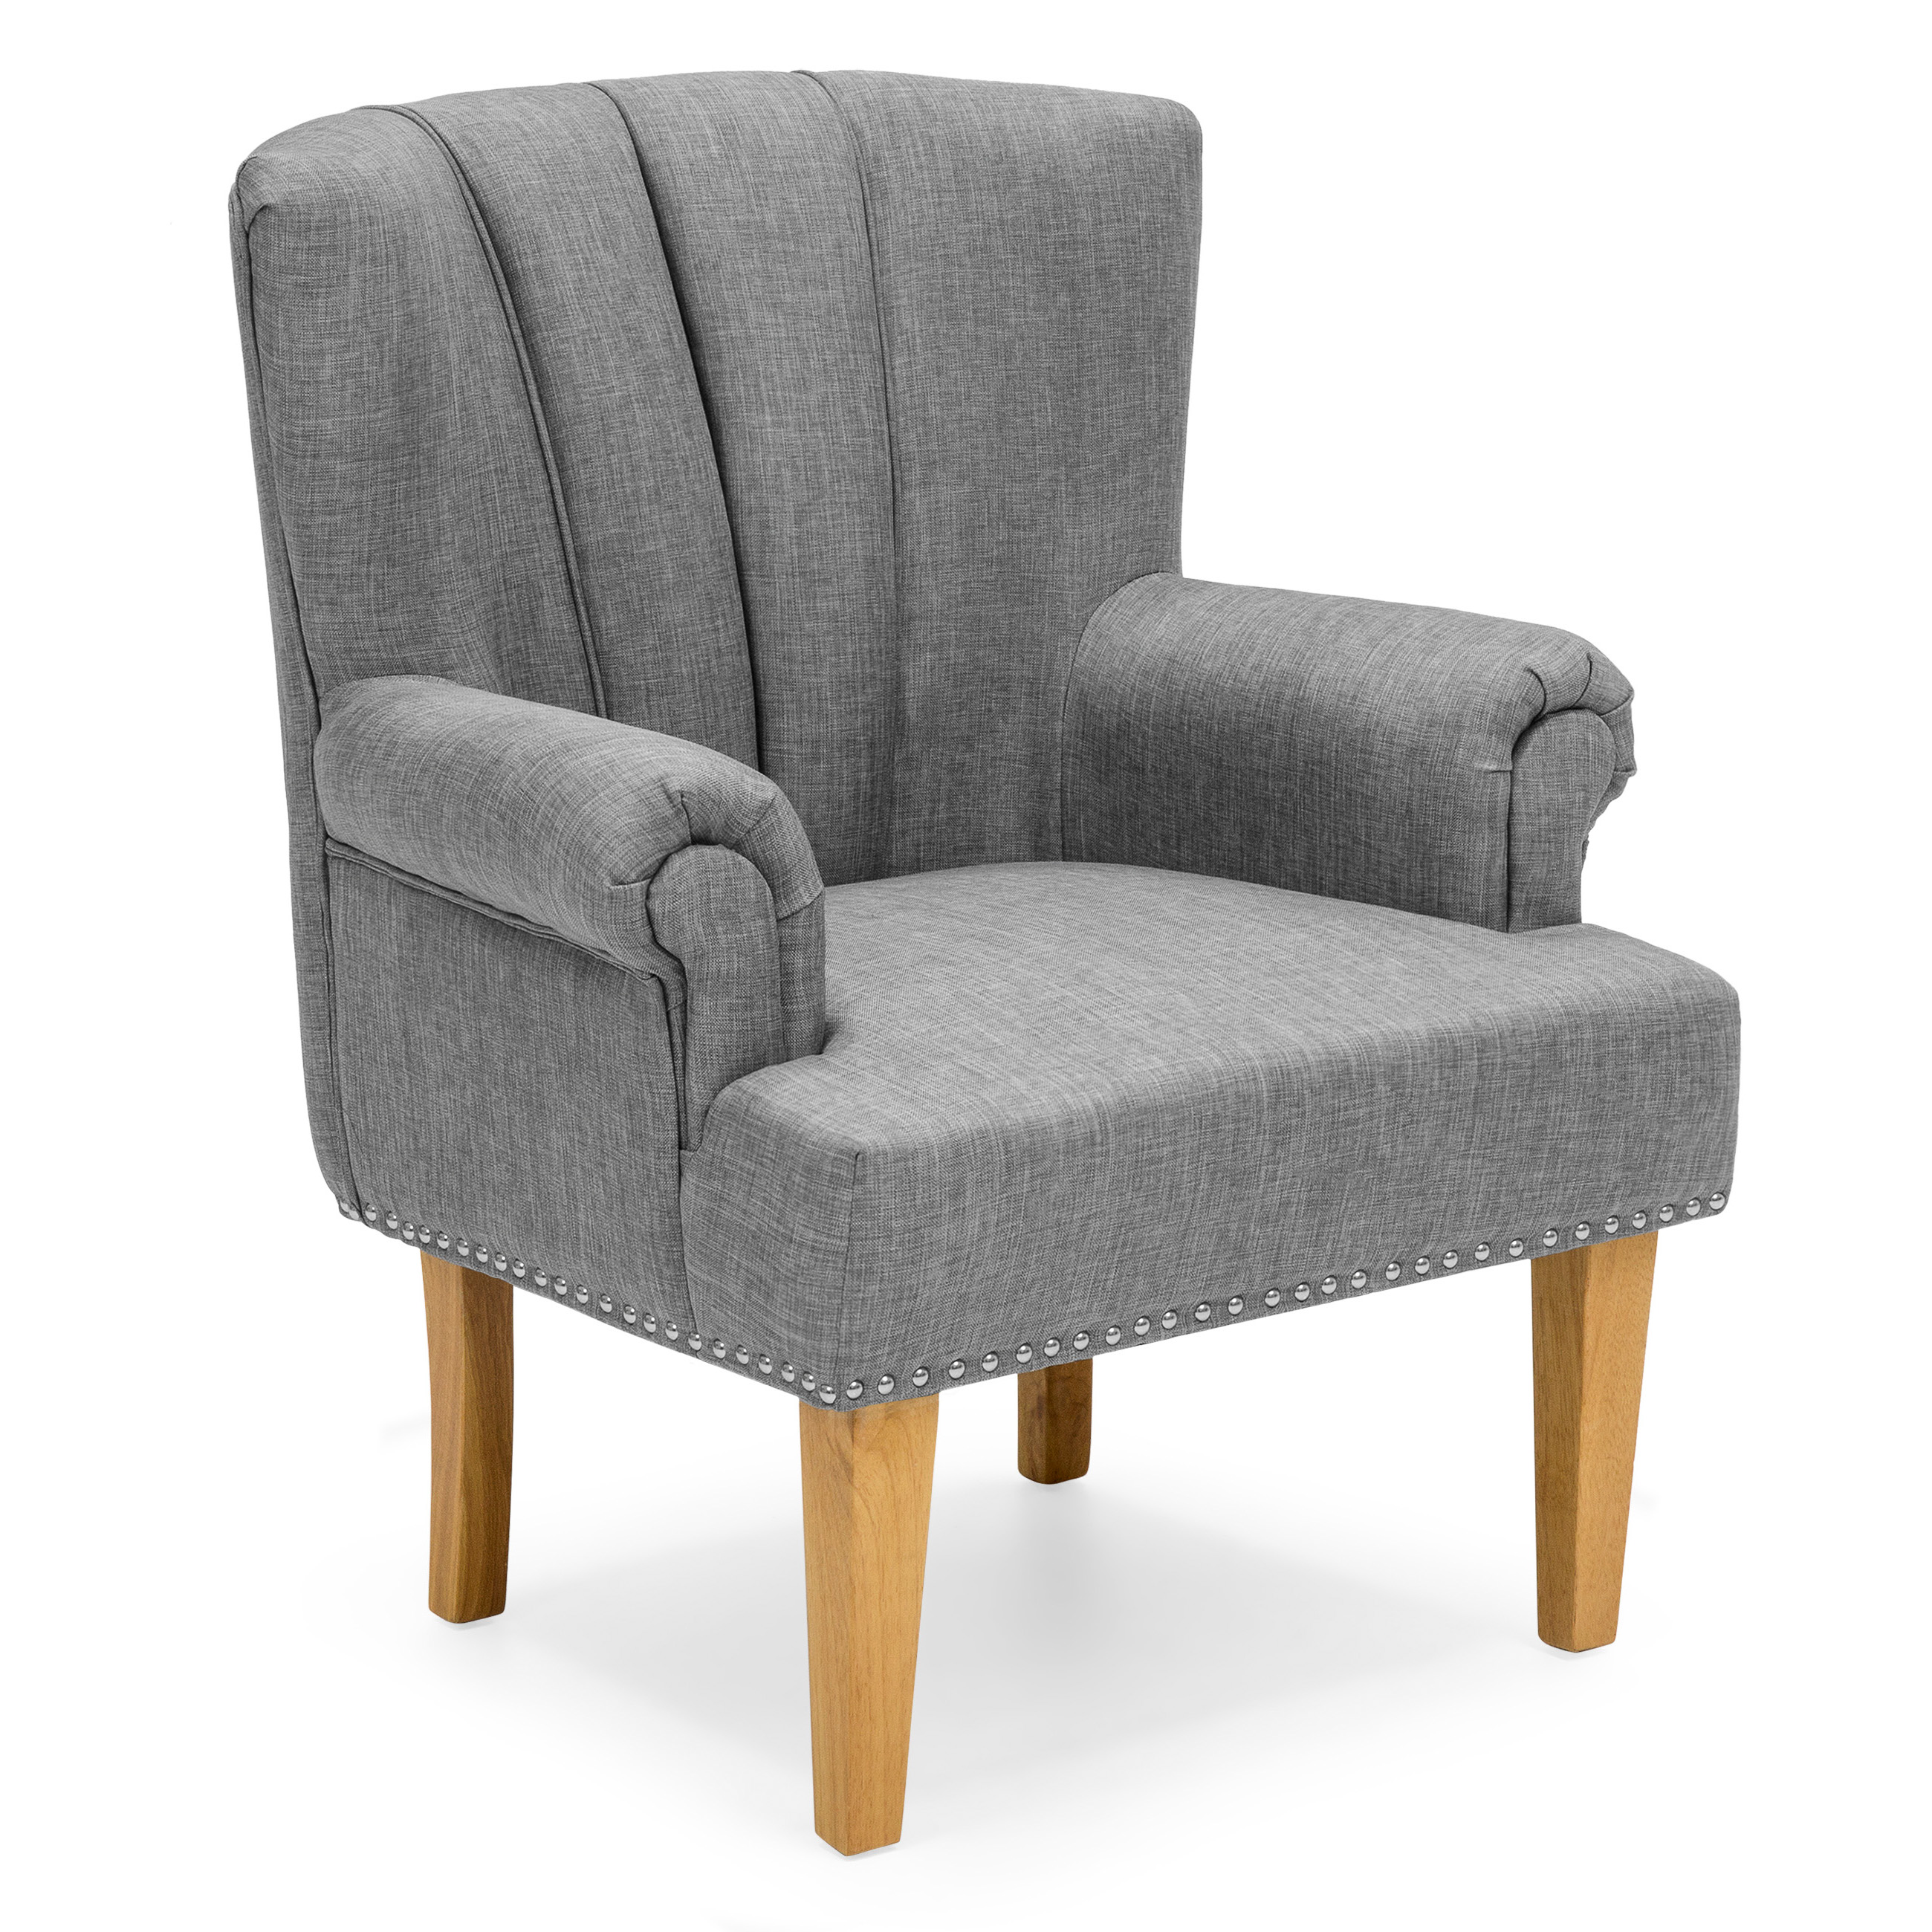 Best Choice Products Living Room Accent Chair w/ Nailhead Detail, Linen Upholstery, Armrest, and Wood Legs (Gray)